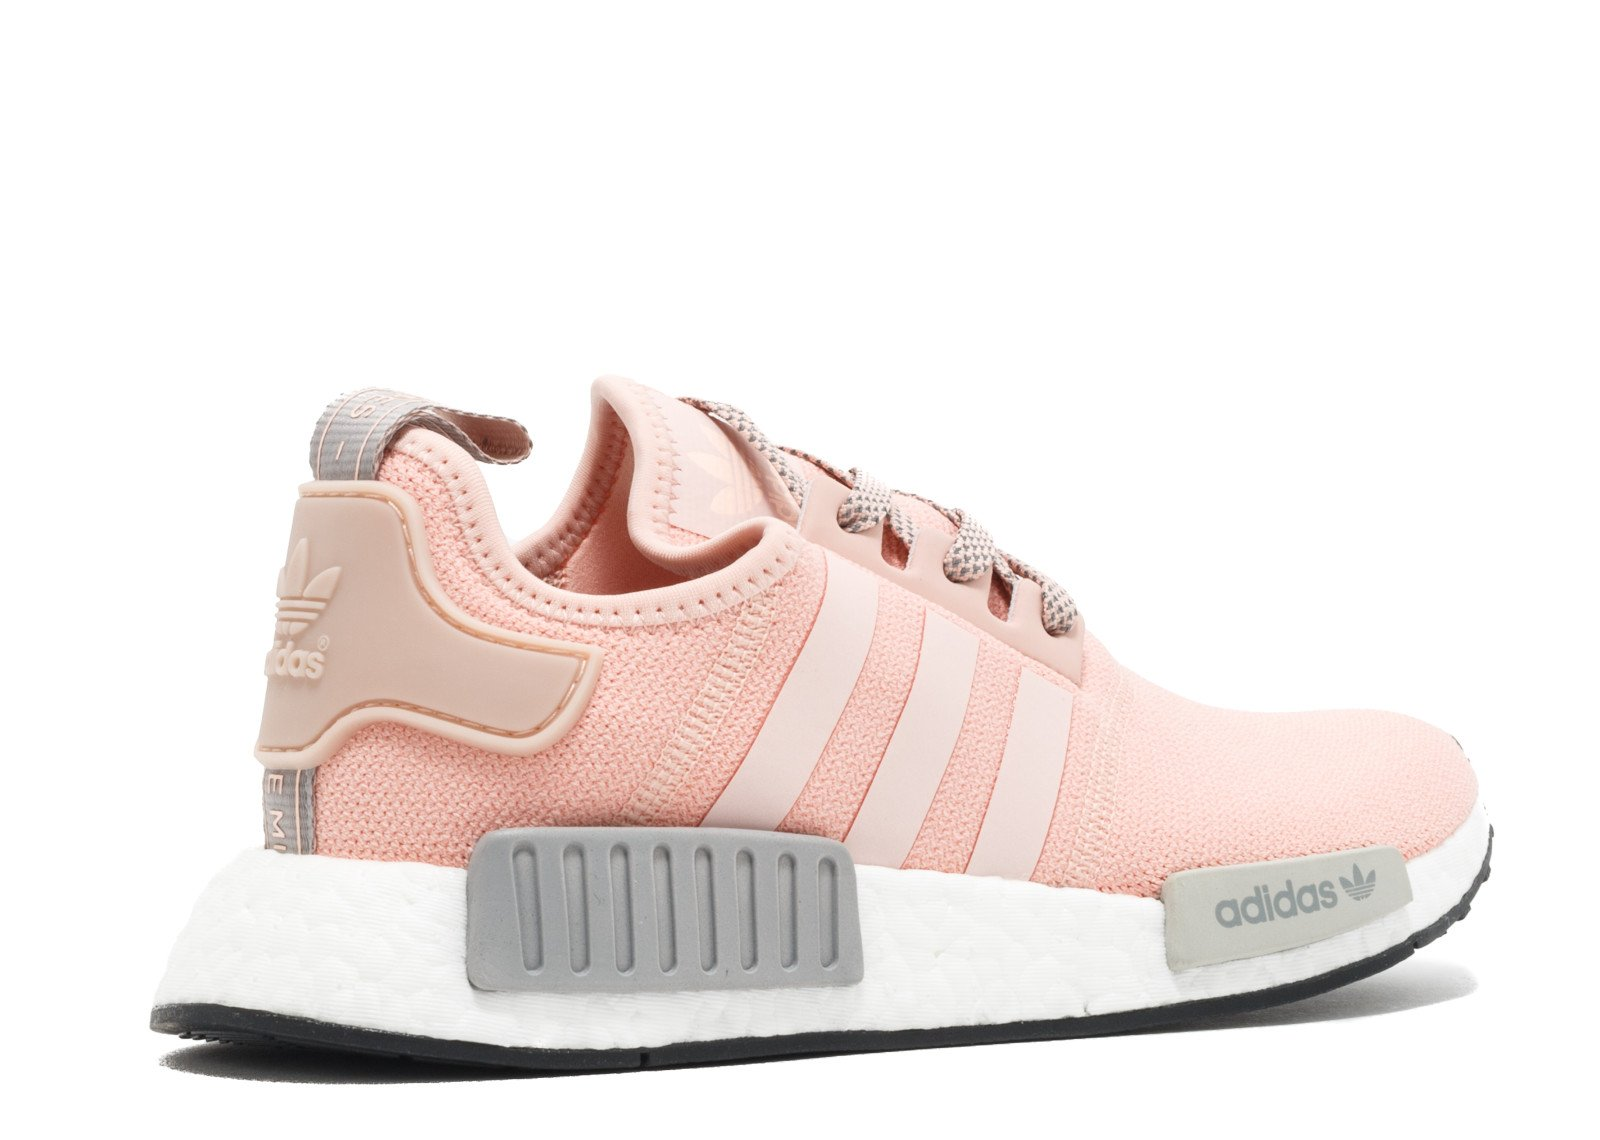 hot sale online 9e49f 8e9bb ... coupon for amazon adidas nmd r1 womens offspring by3059 vapour pink  light onix sz 9.5us